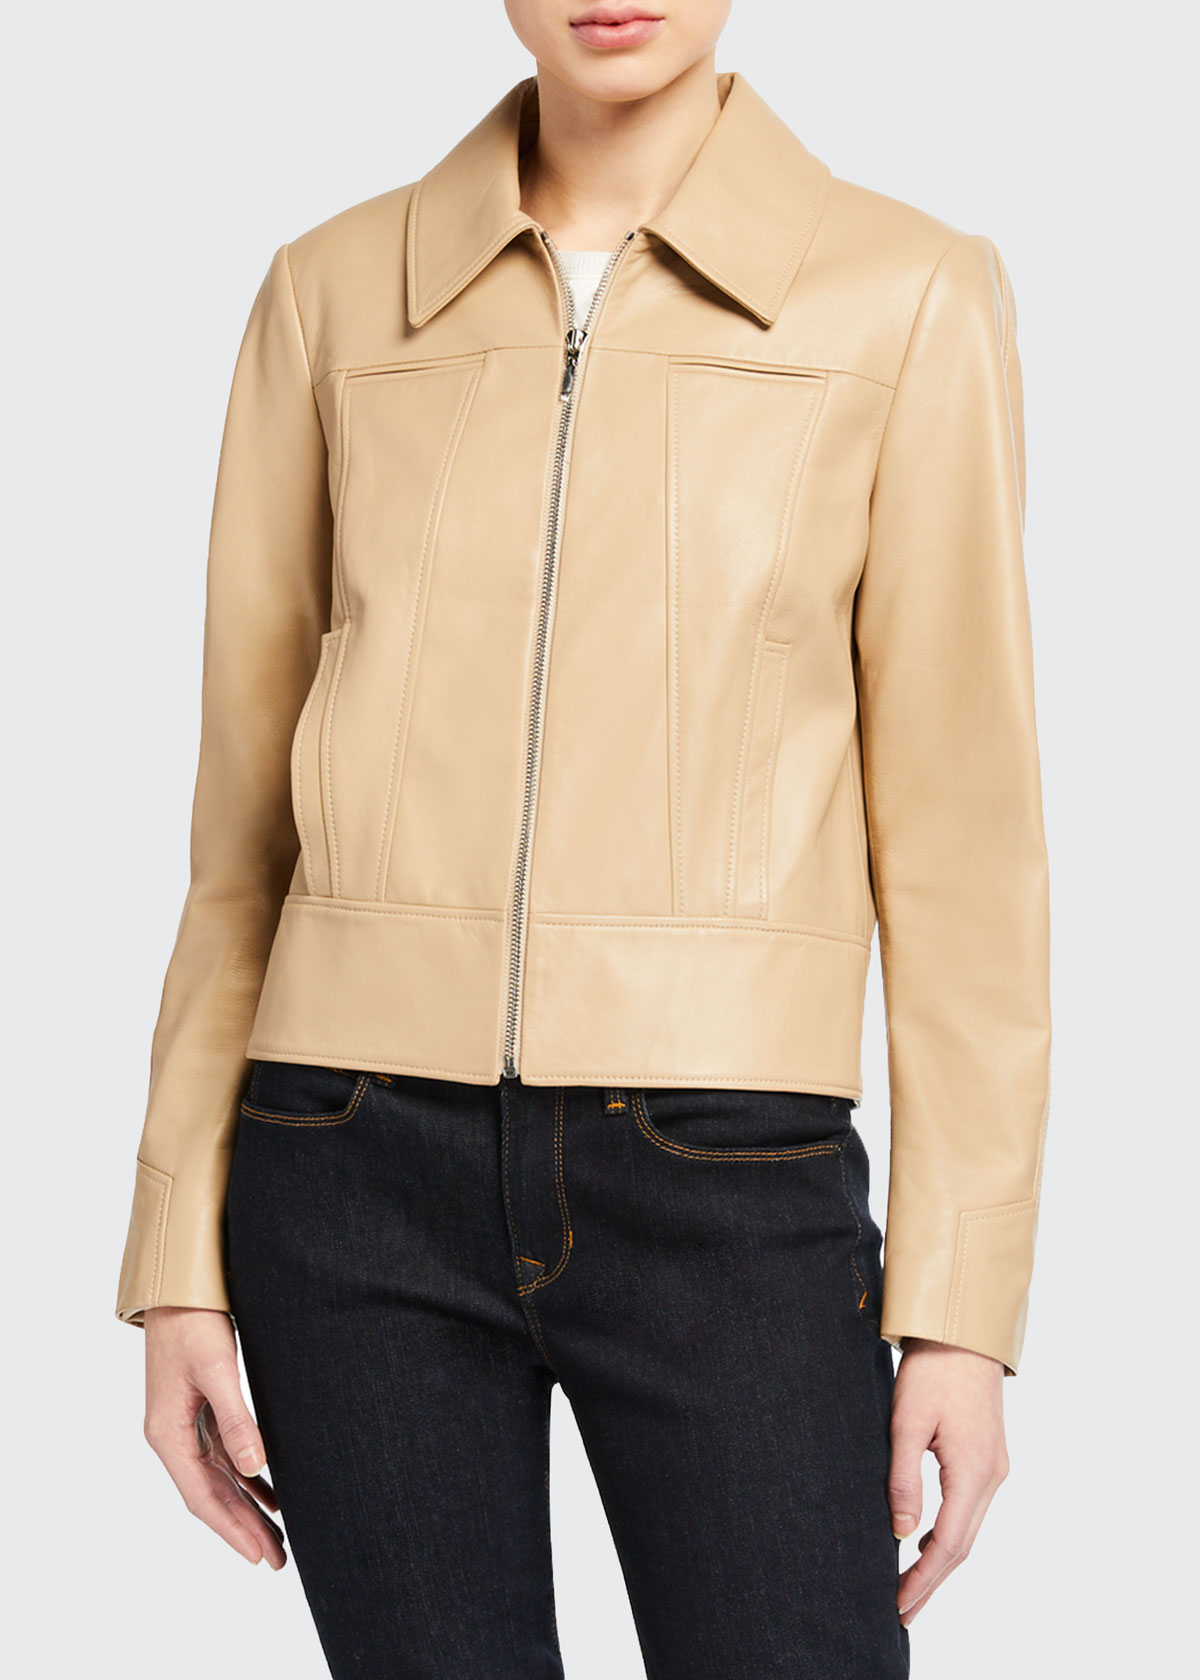 Elie Tahari ADDISON ZIP-FRONT LEATHER JACKET